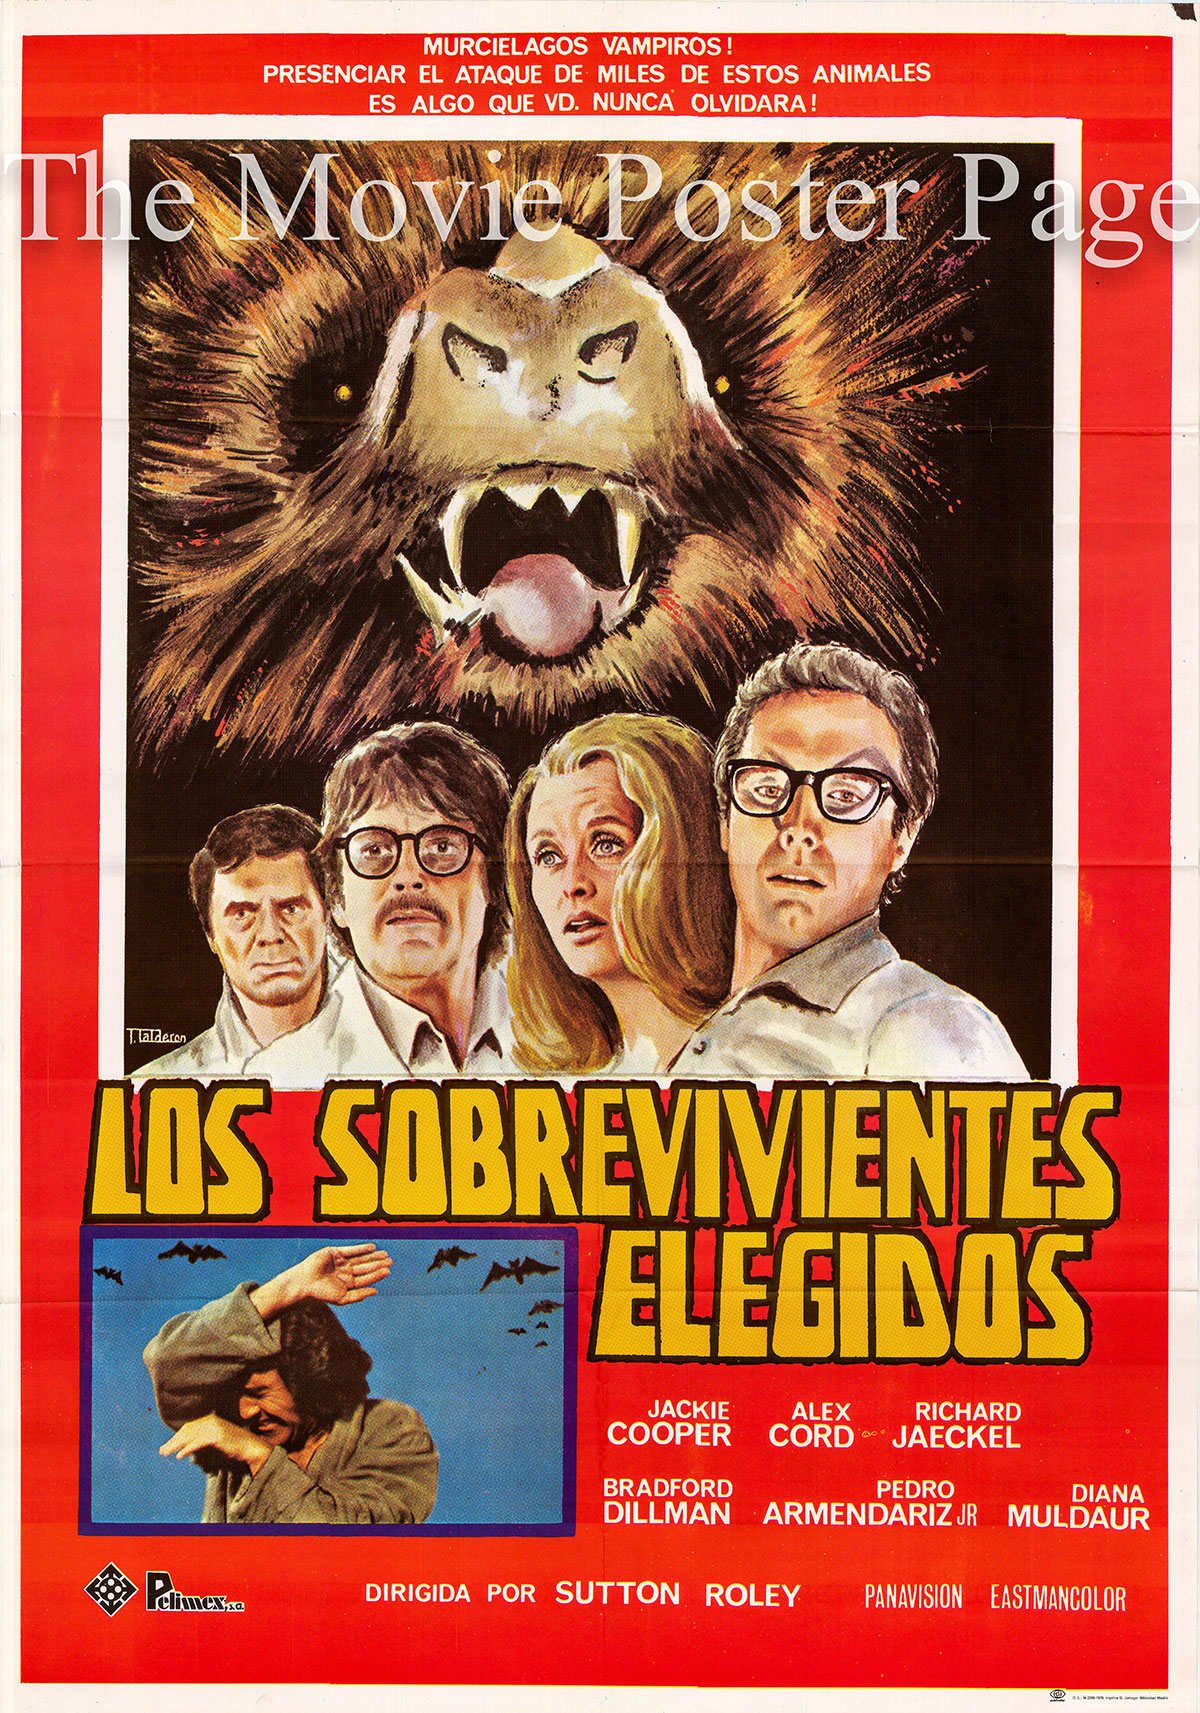 Pictured is a 1979 rerelease Spanish promotional poster for the 1974 Sutton Roley film Chosen Survivors starring Jackie Cooper.